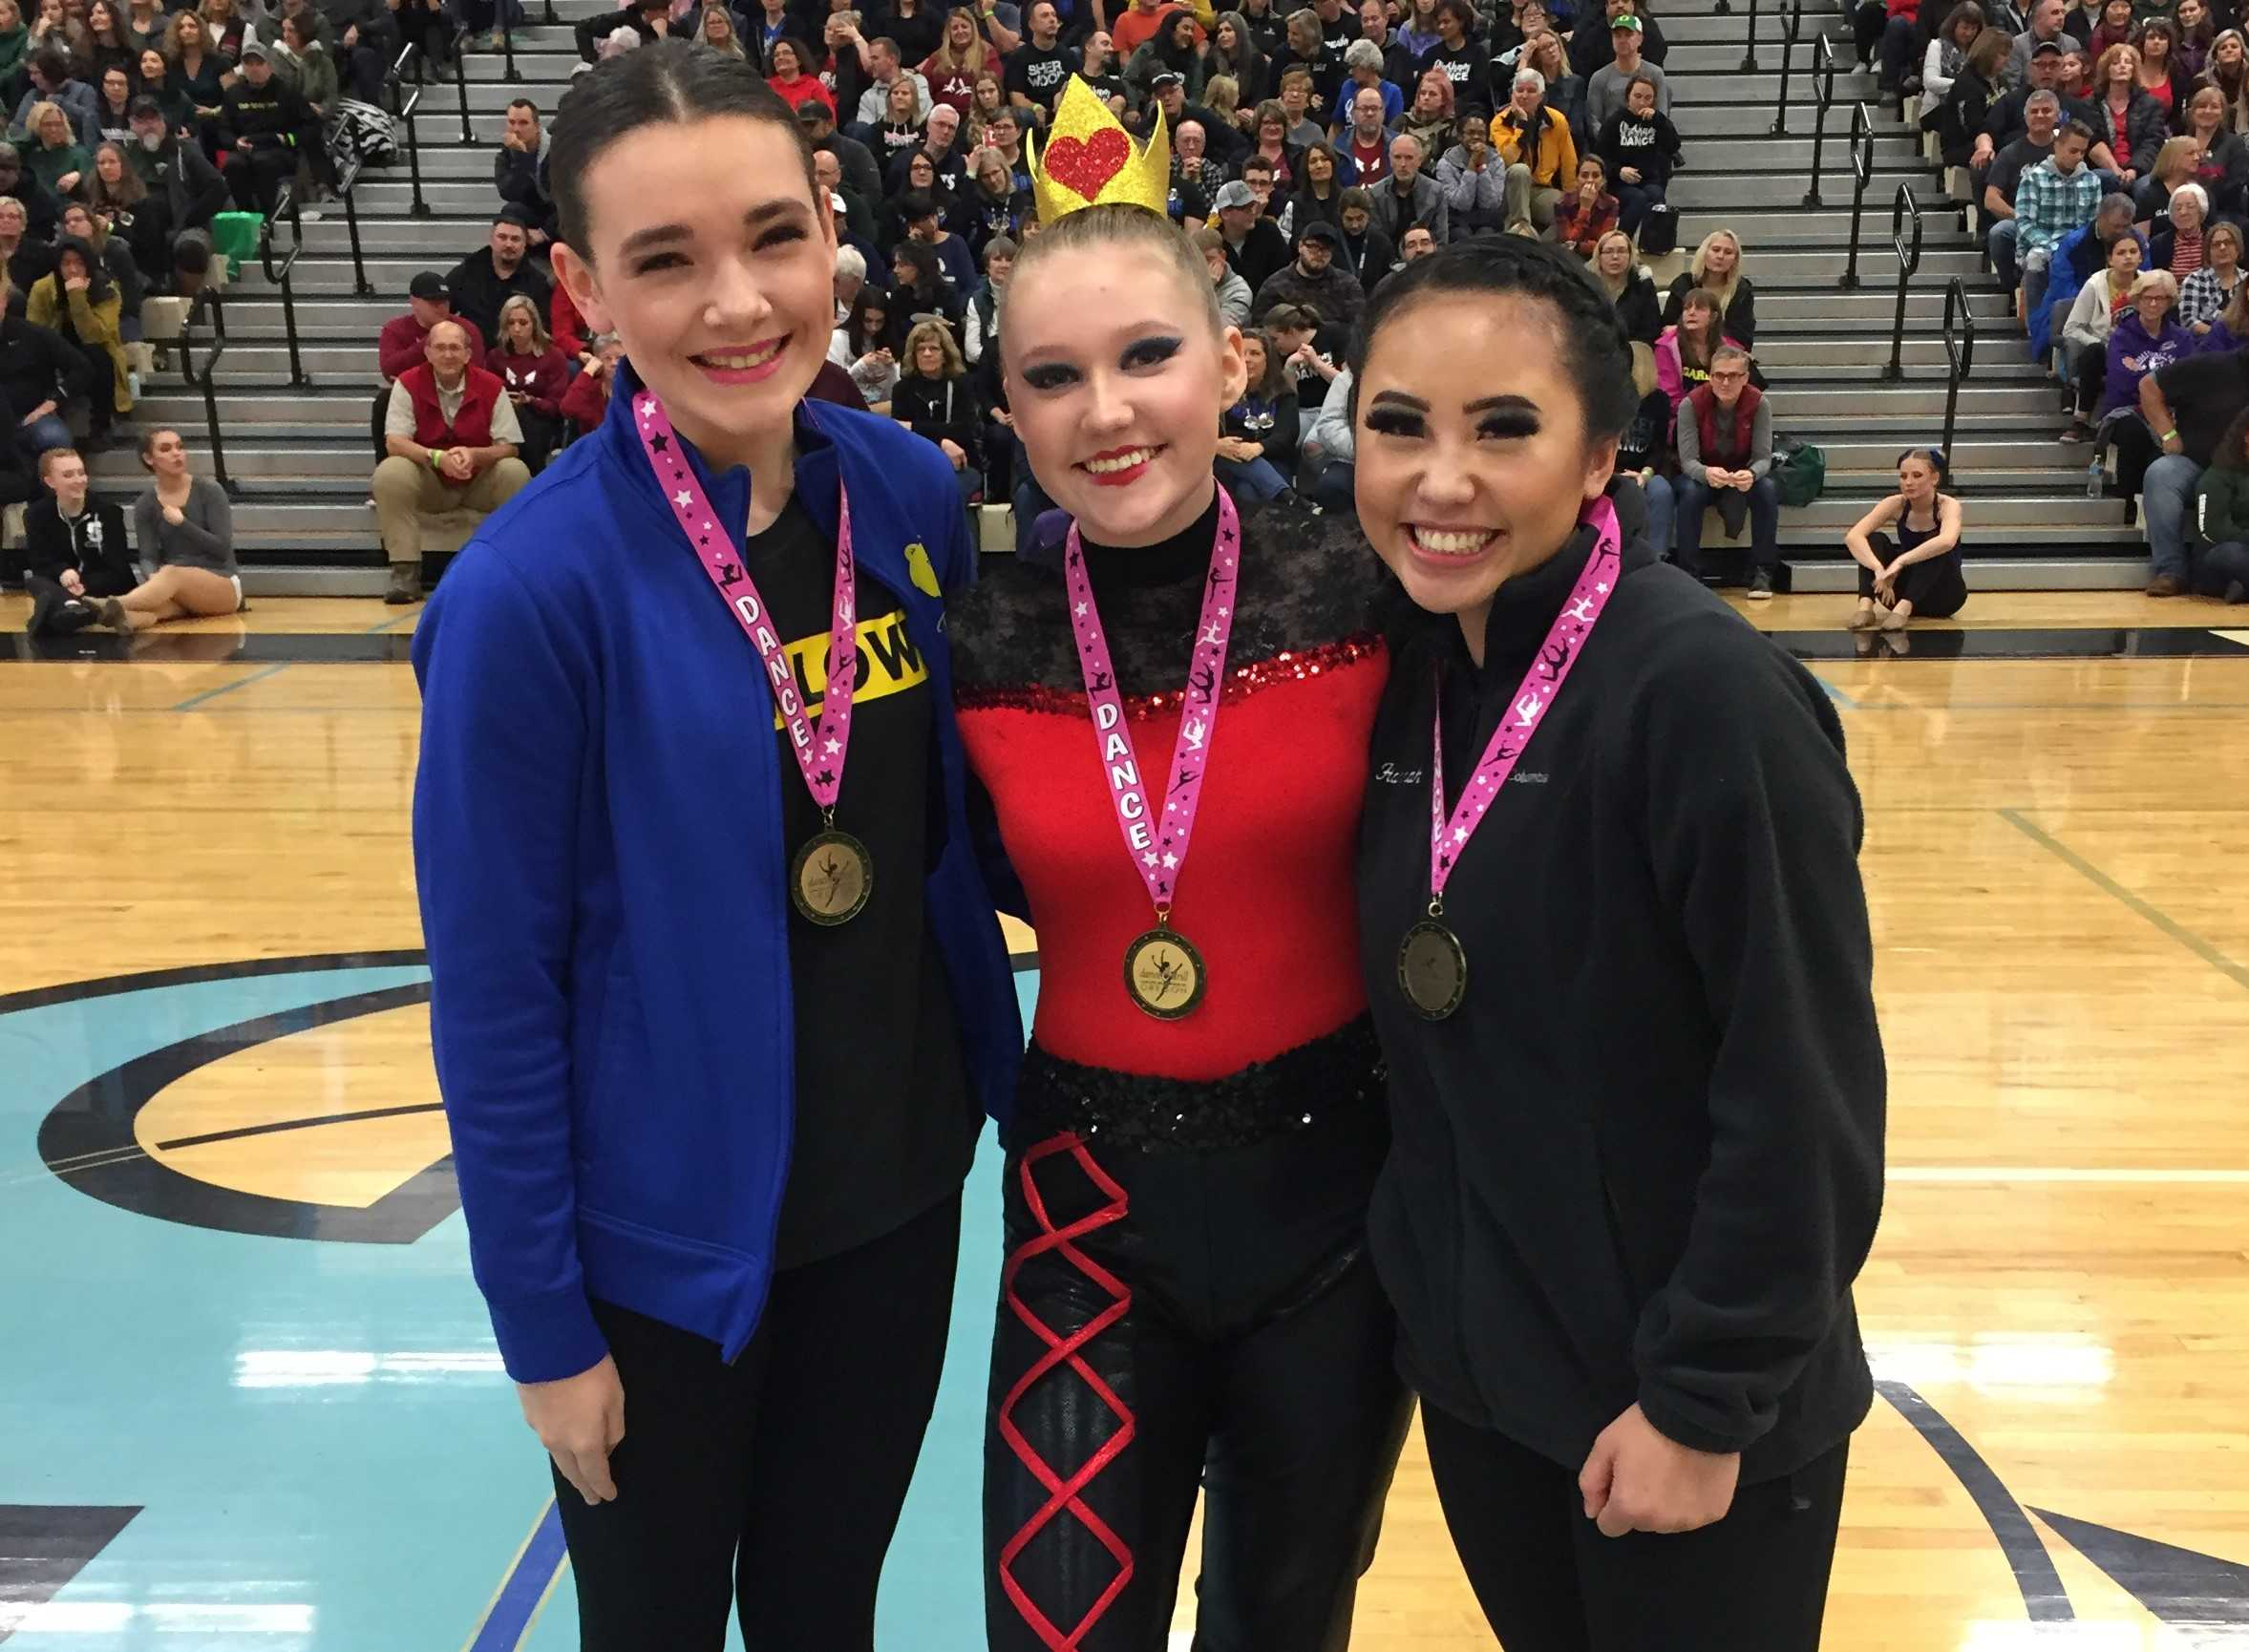 Advanced drill down winners (from left) Hanna Gibson of Barlow,, Kalista DeHarsh of Thurston and Hanna Li of Sprague.